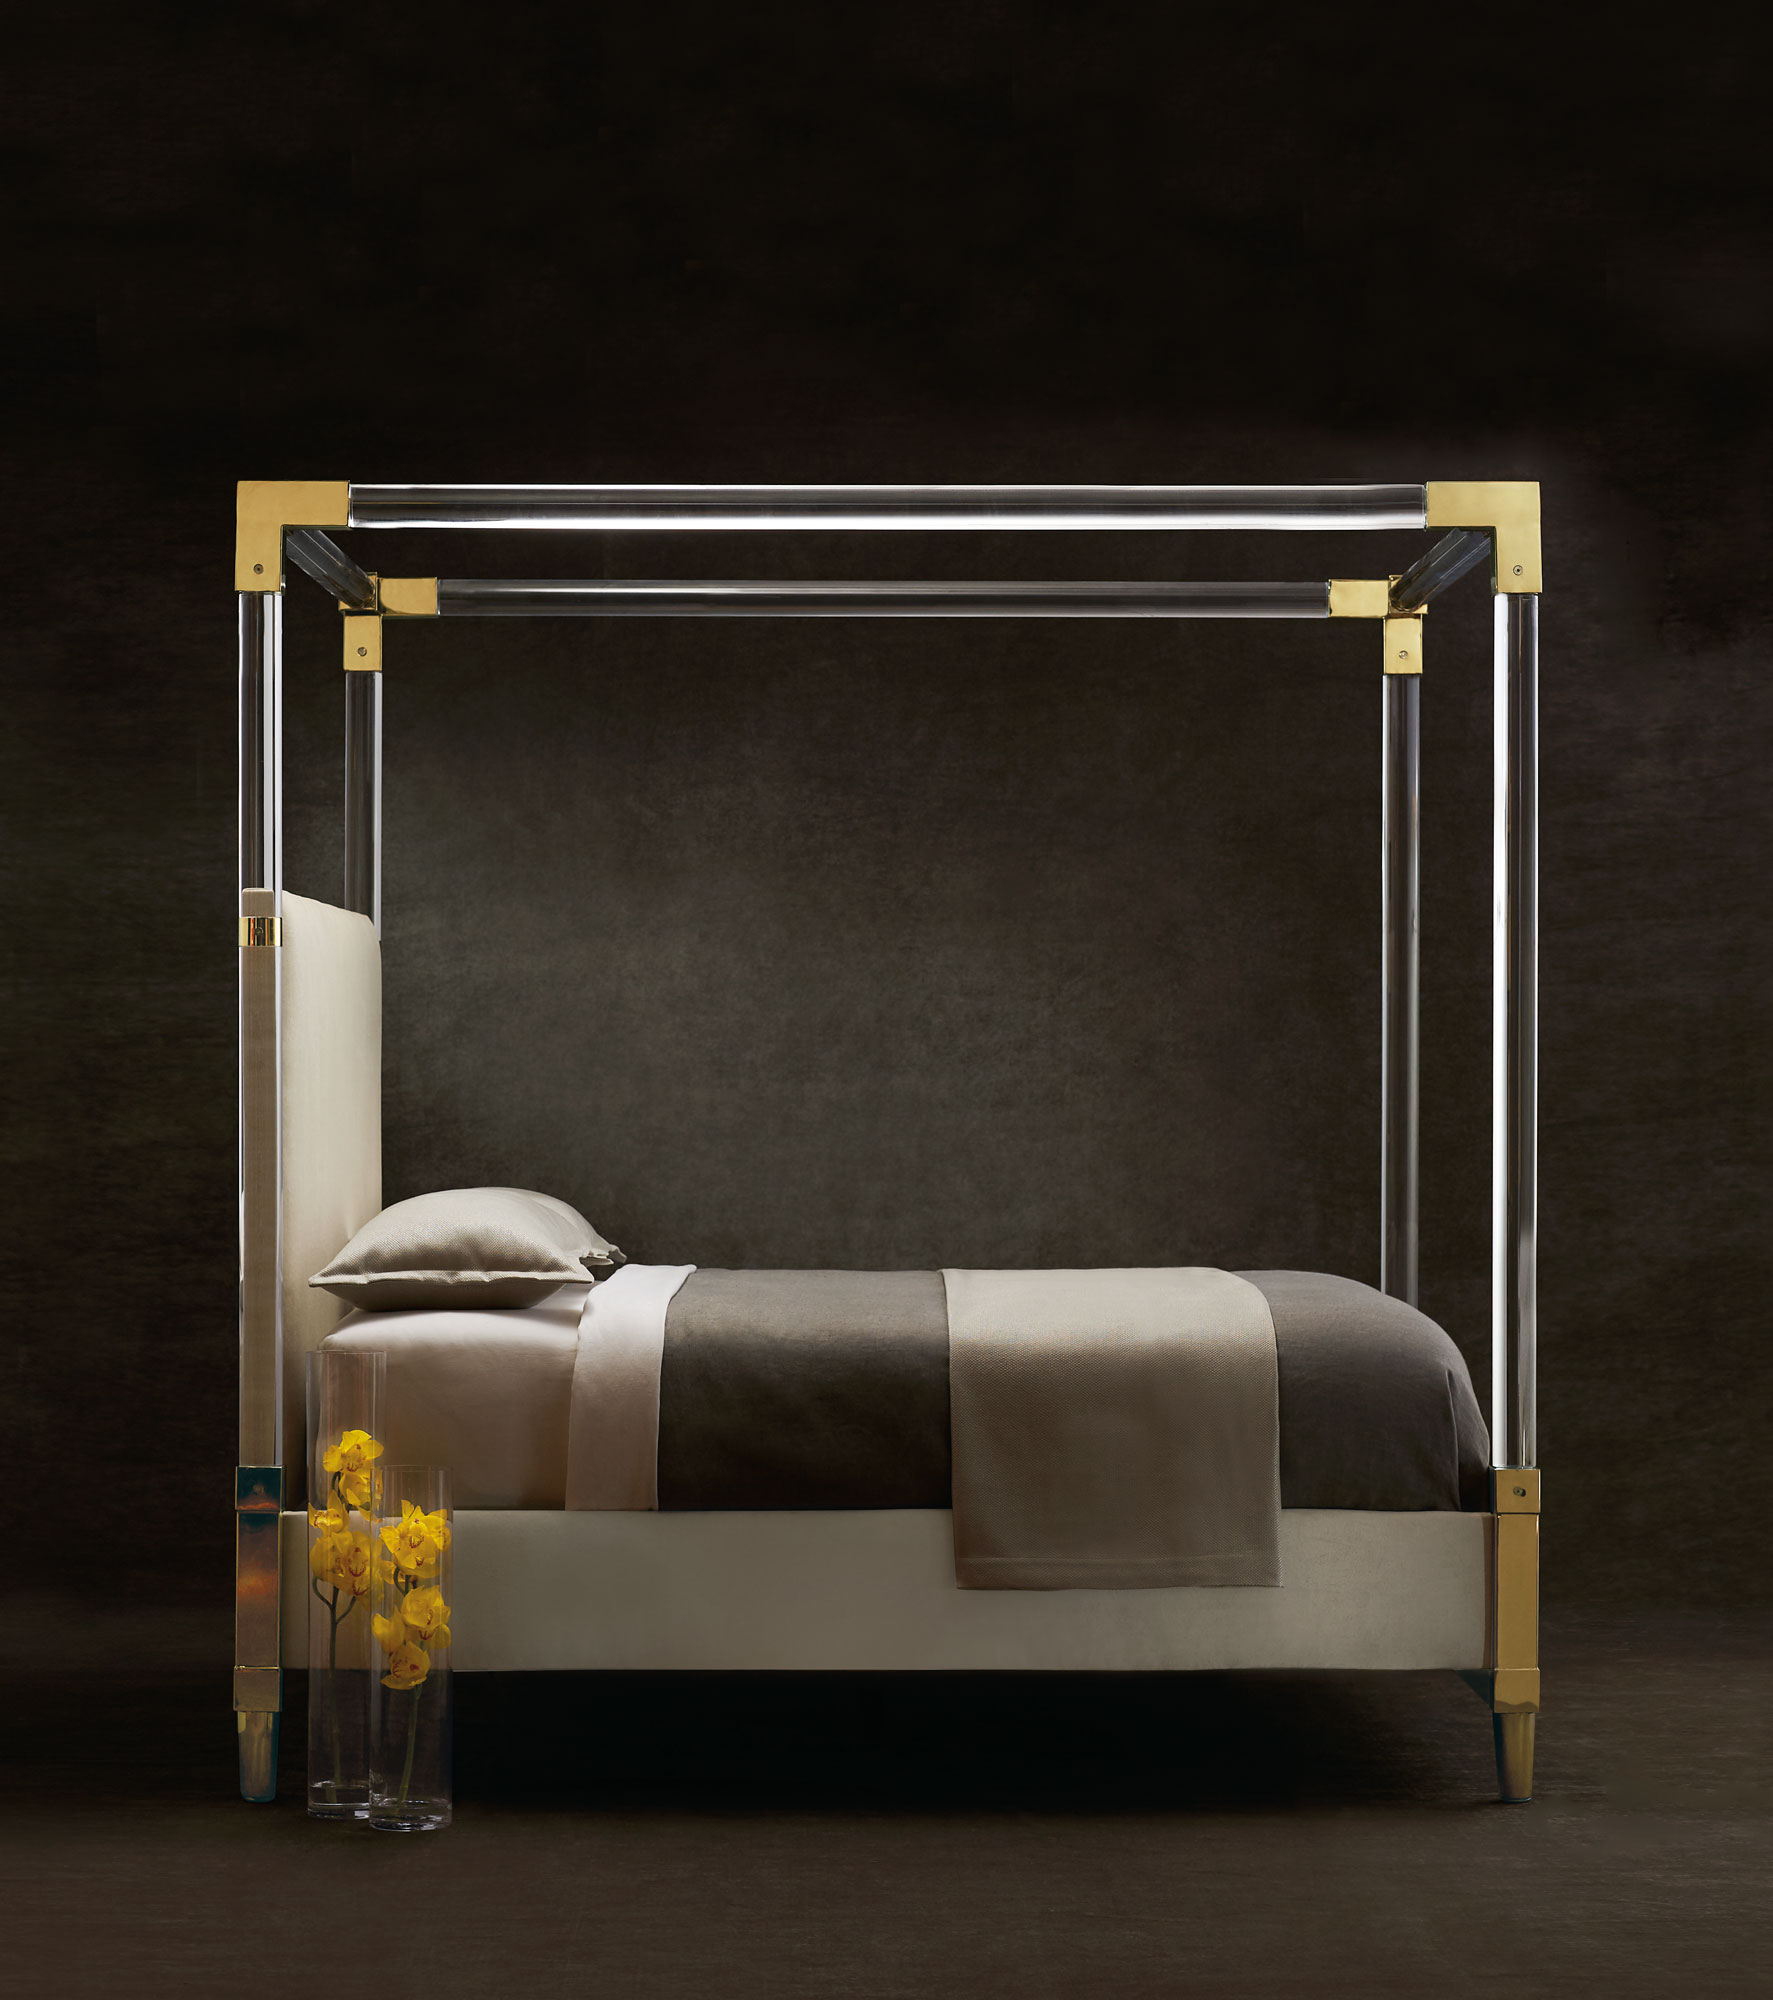 acrylic bedroom furniture. Acrylic Bedroom Furniture 2